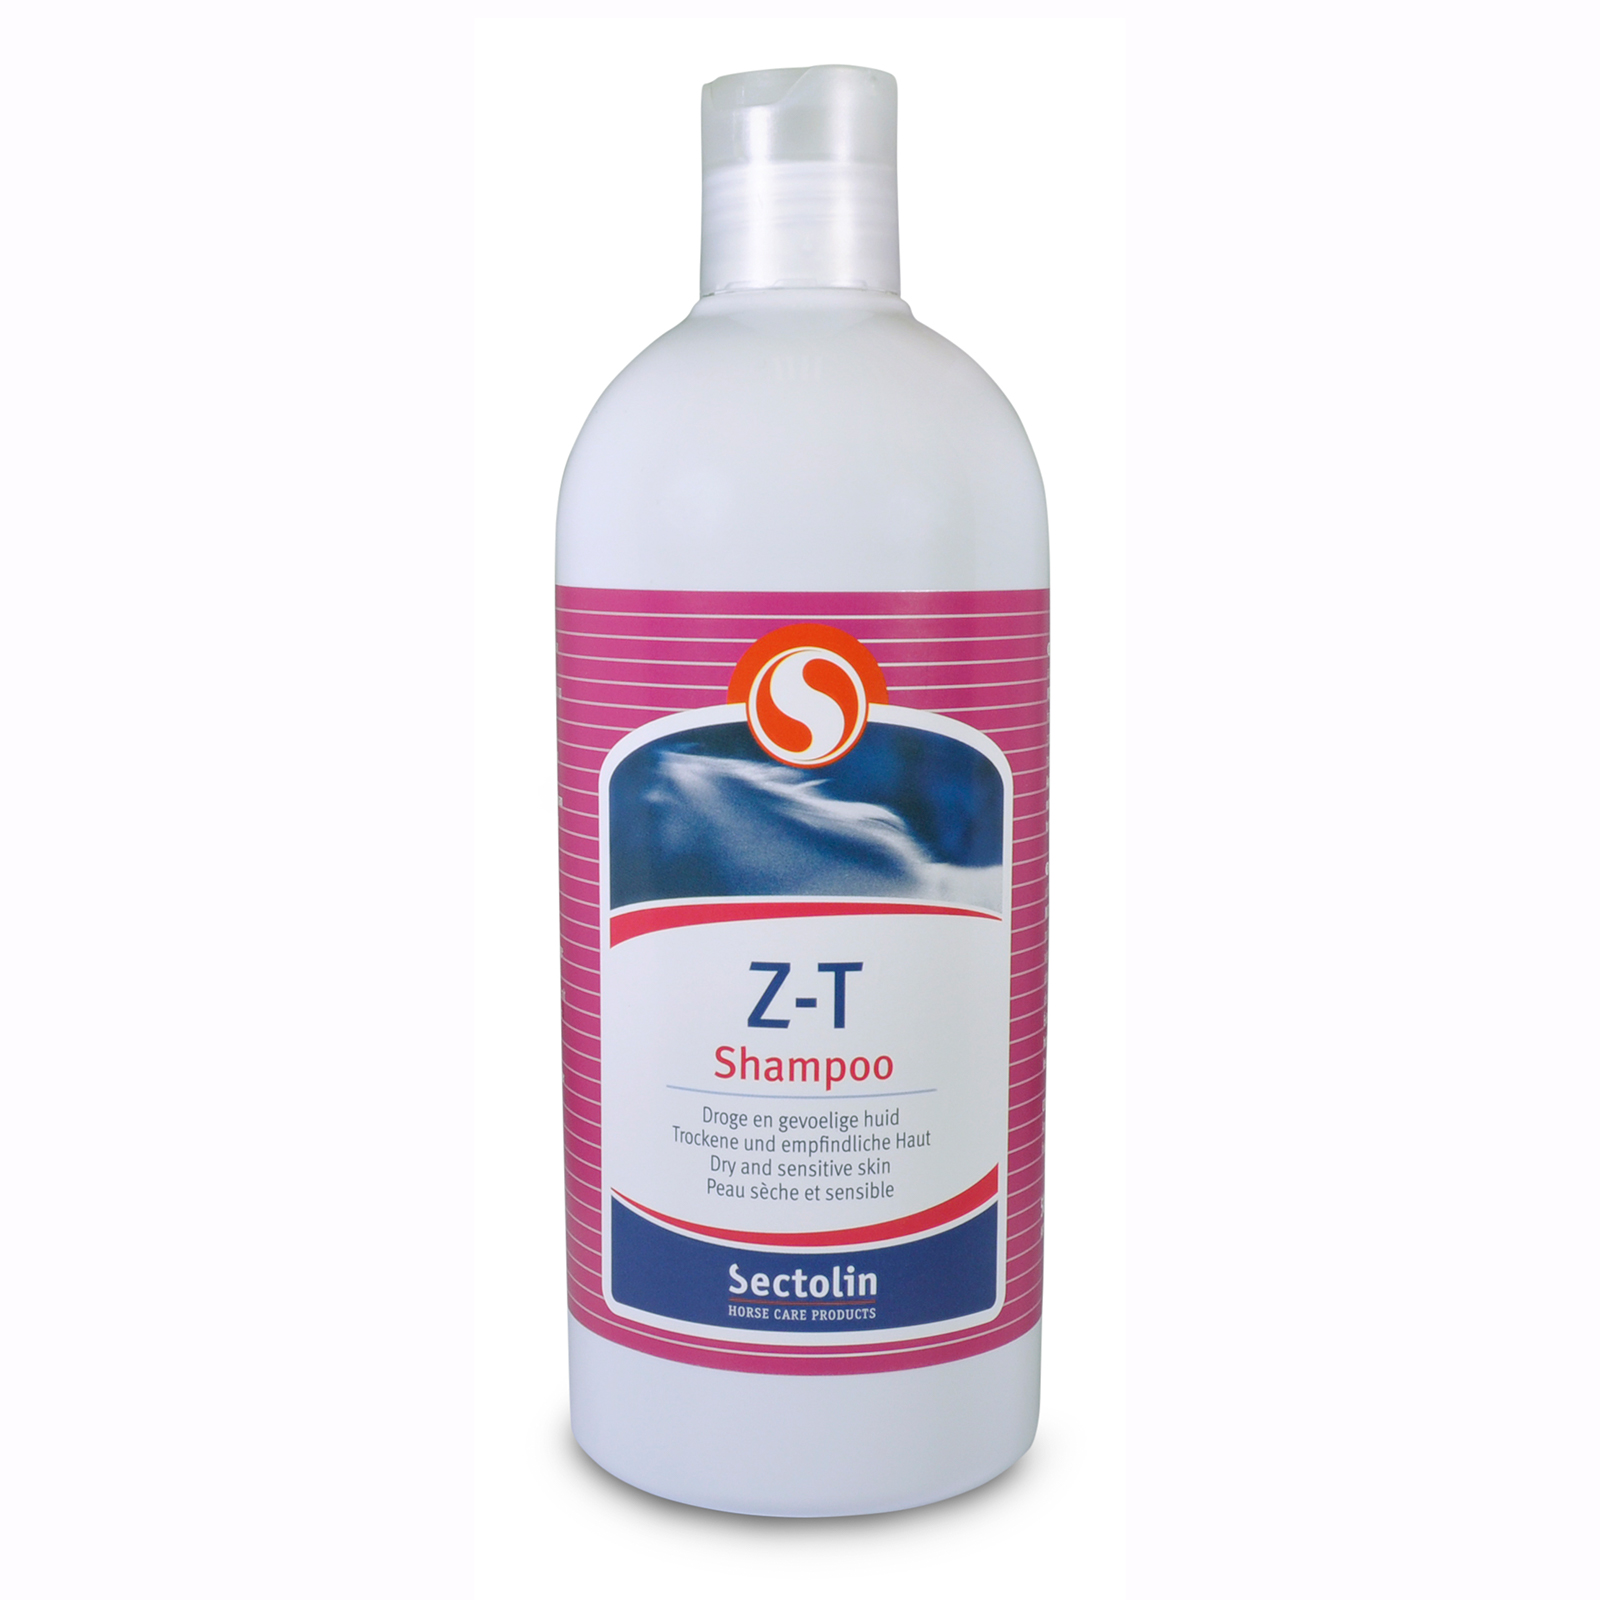 Sectolin Z-T Shampoo 500 ml